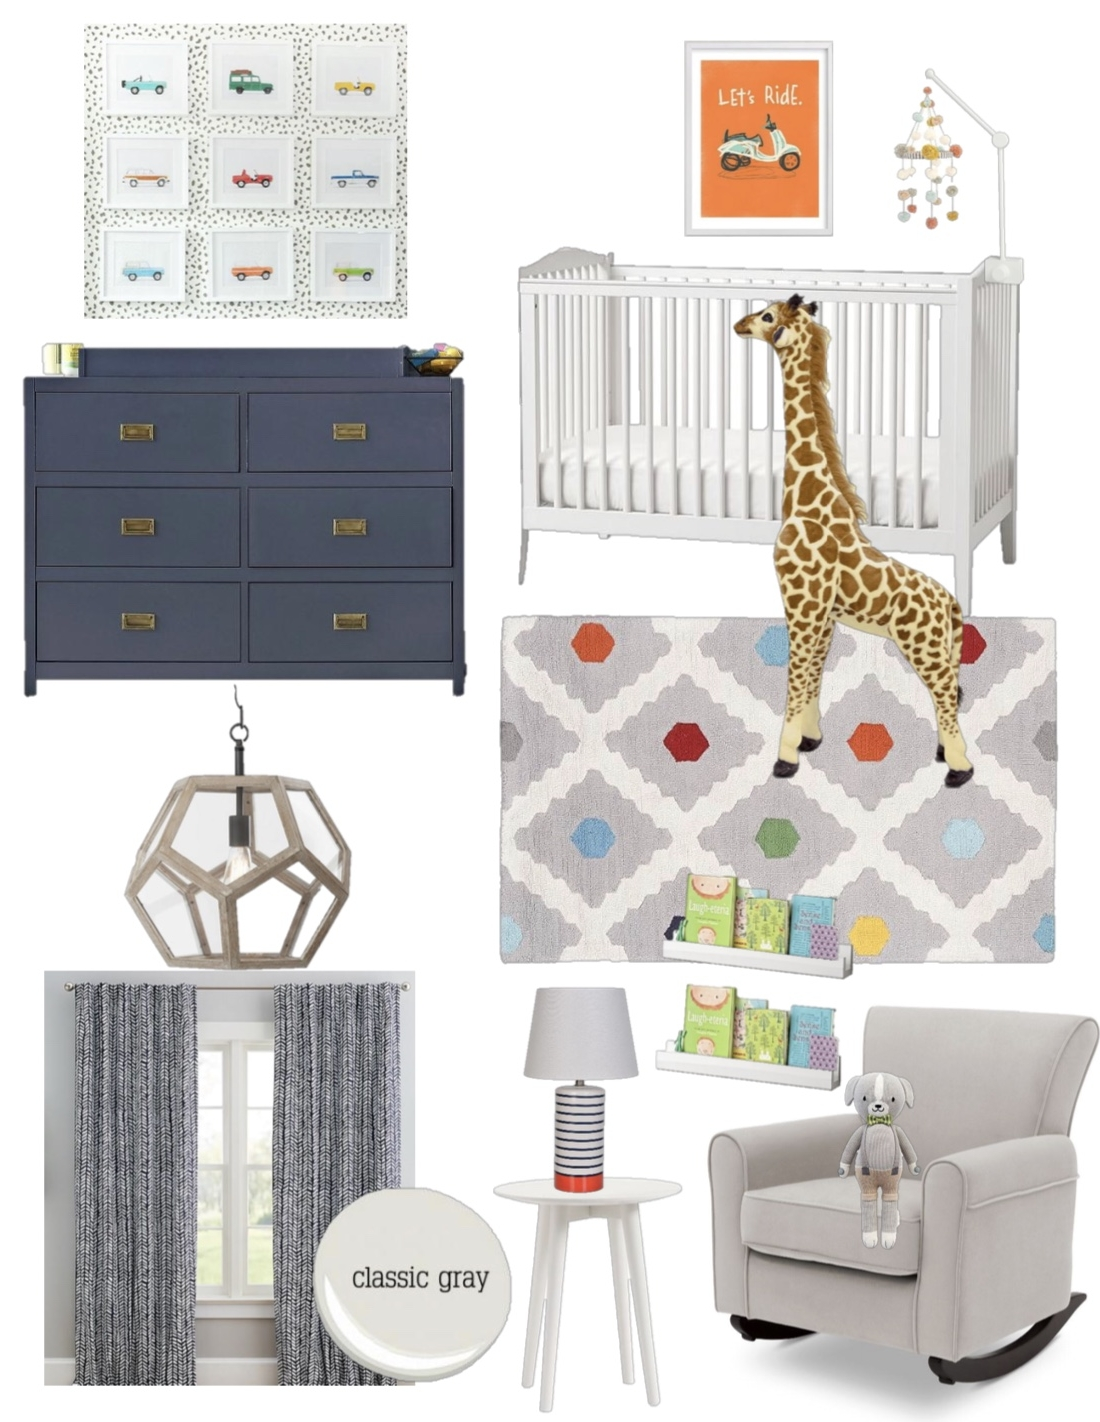 Nursery Mood Board.jpg